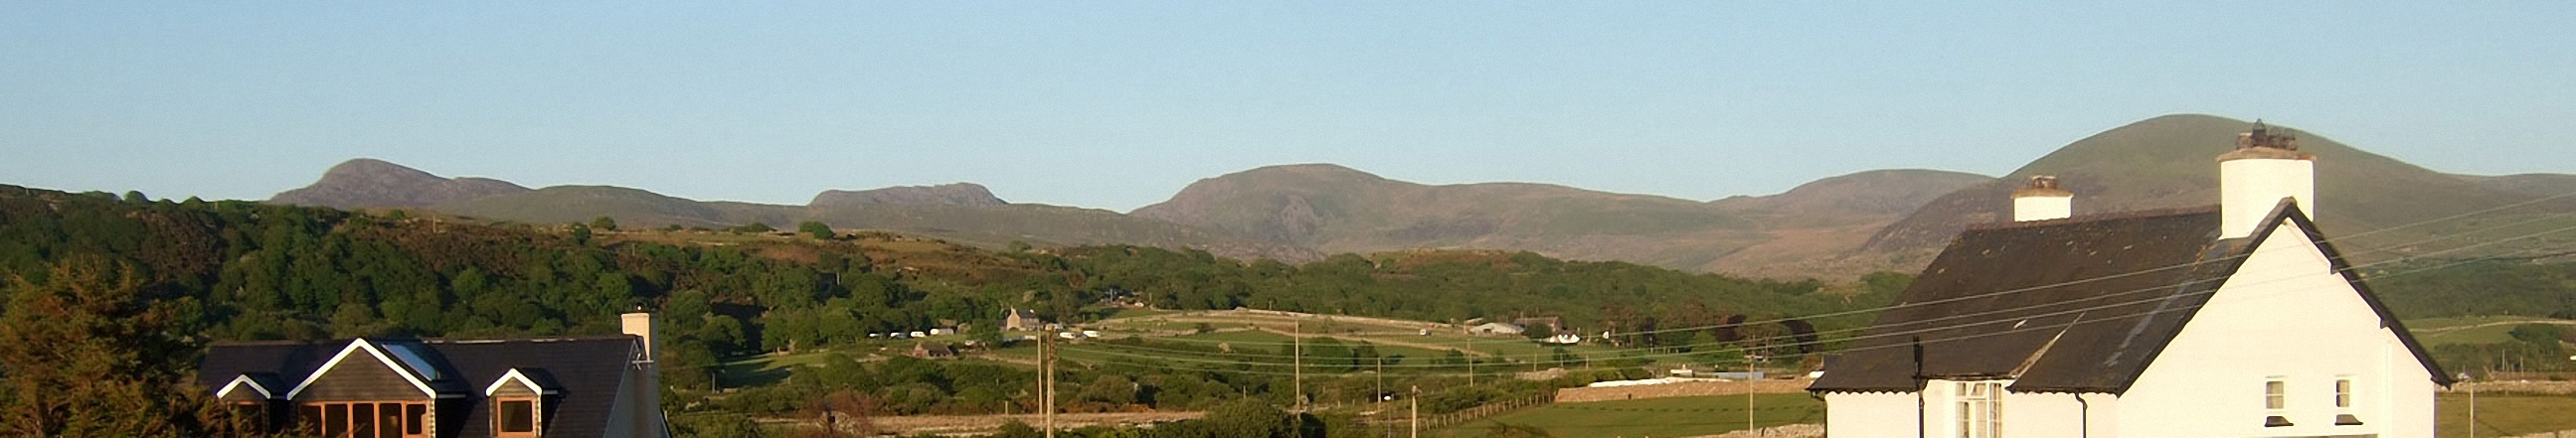 The Rhinogs featuring (left to right): Rhinog Fawr, Rhinog Fach, Y Llethr, Diffwys and Moelfre (Rhinogs) (behind the house) from Llandanwg